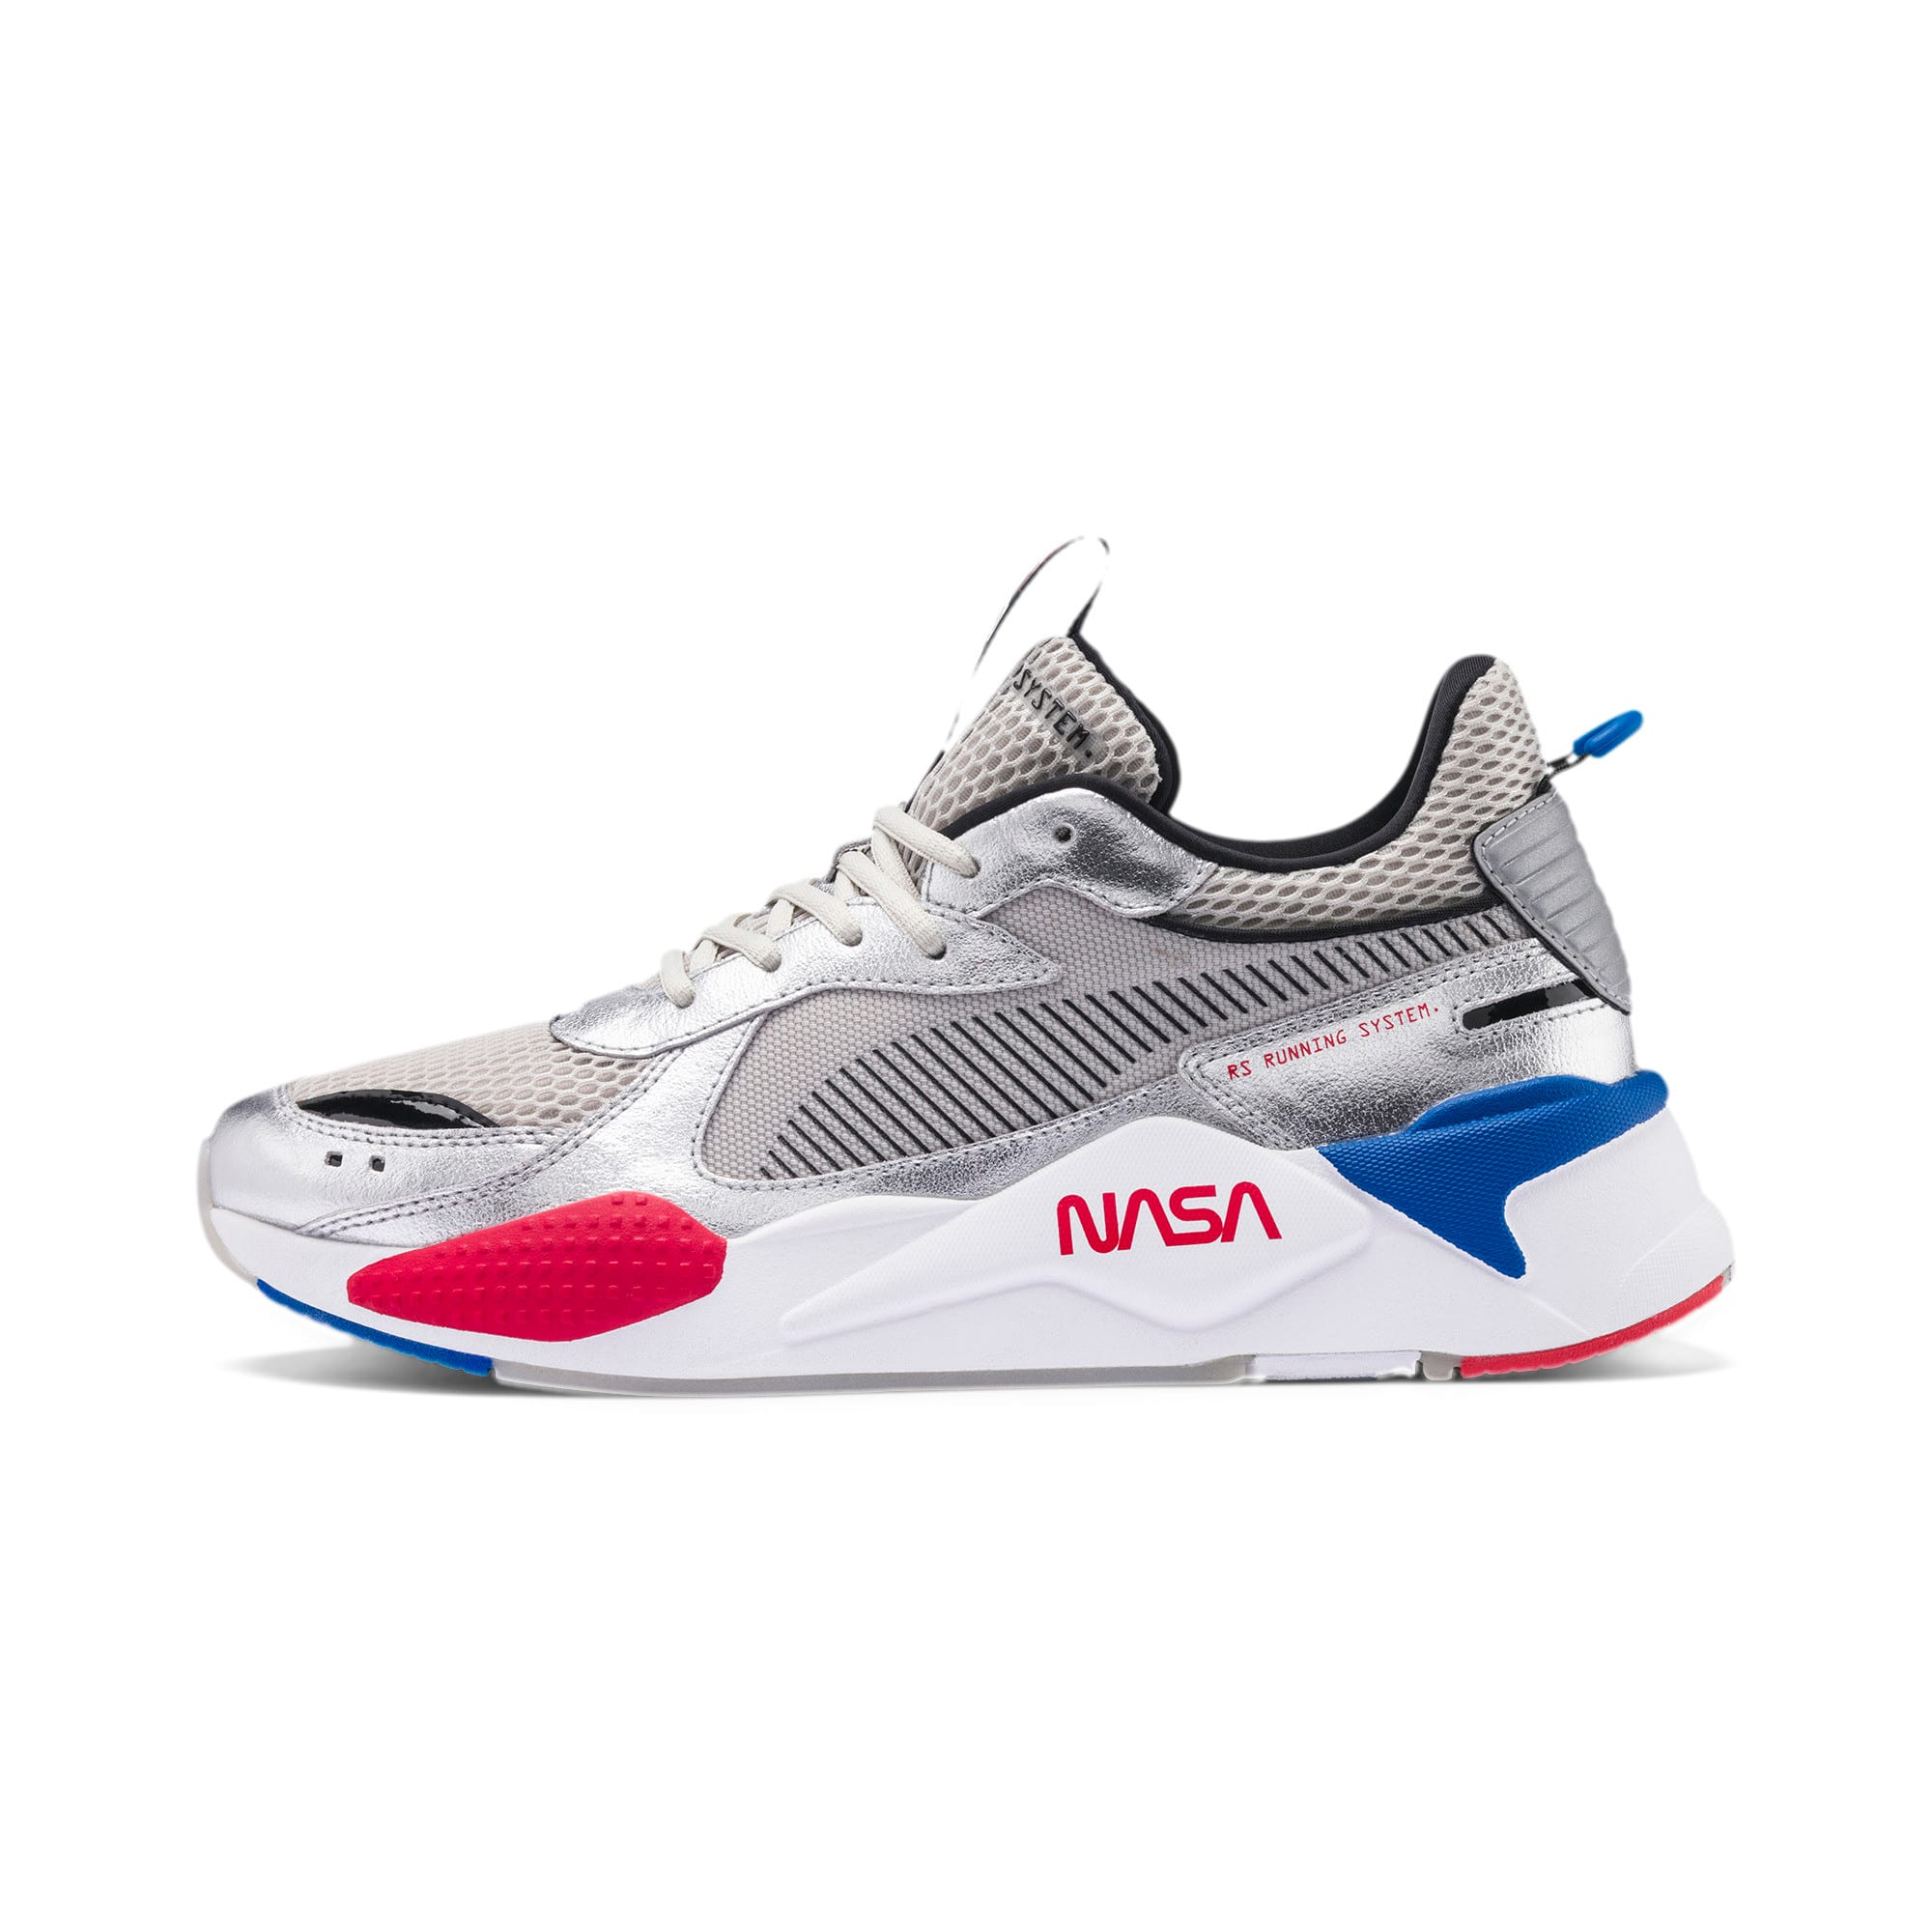 Thumbnail 1 of RS-X Space Agency Sneakers, Puma Silver-Gray Violet, medium